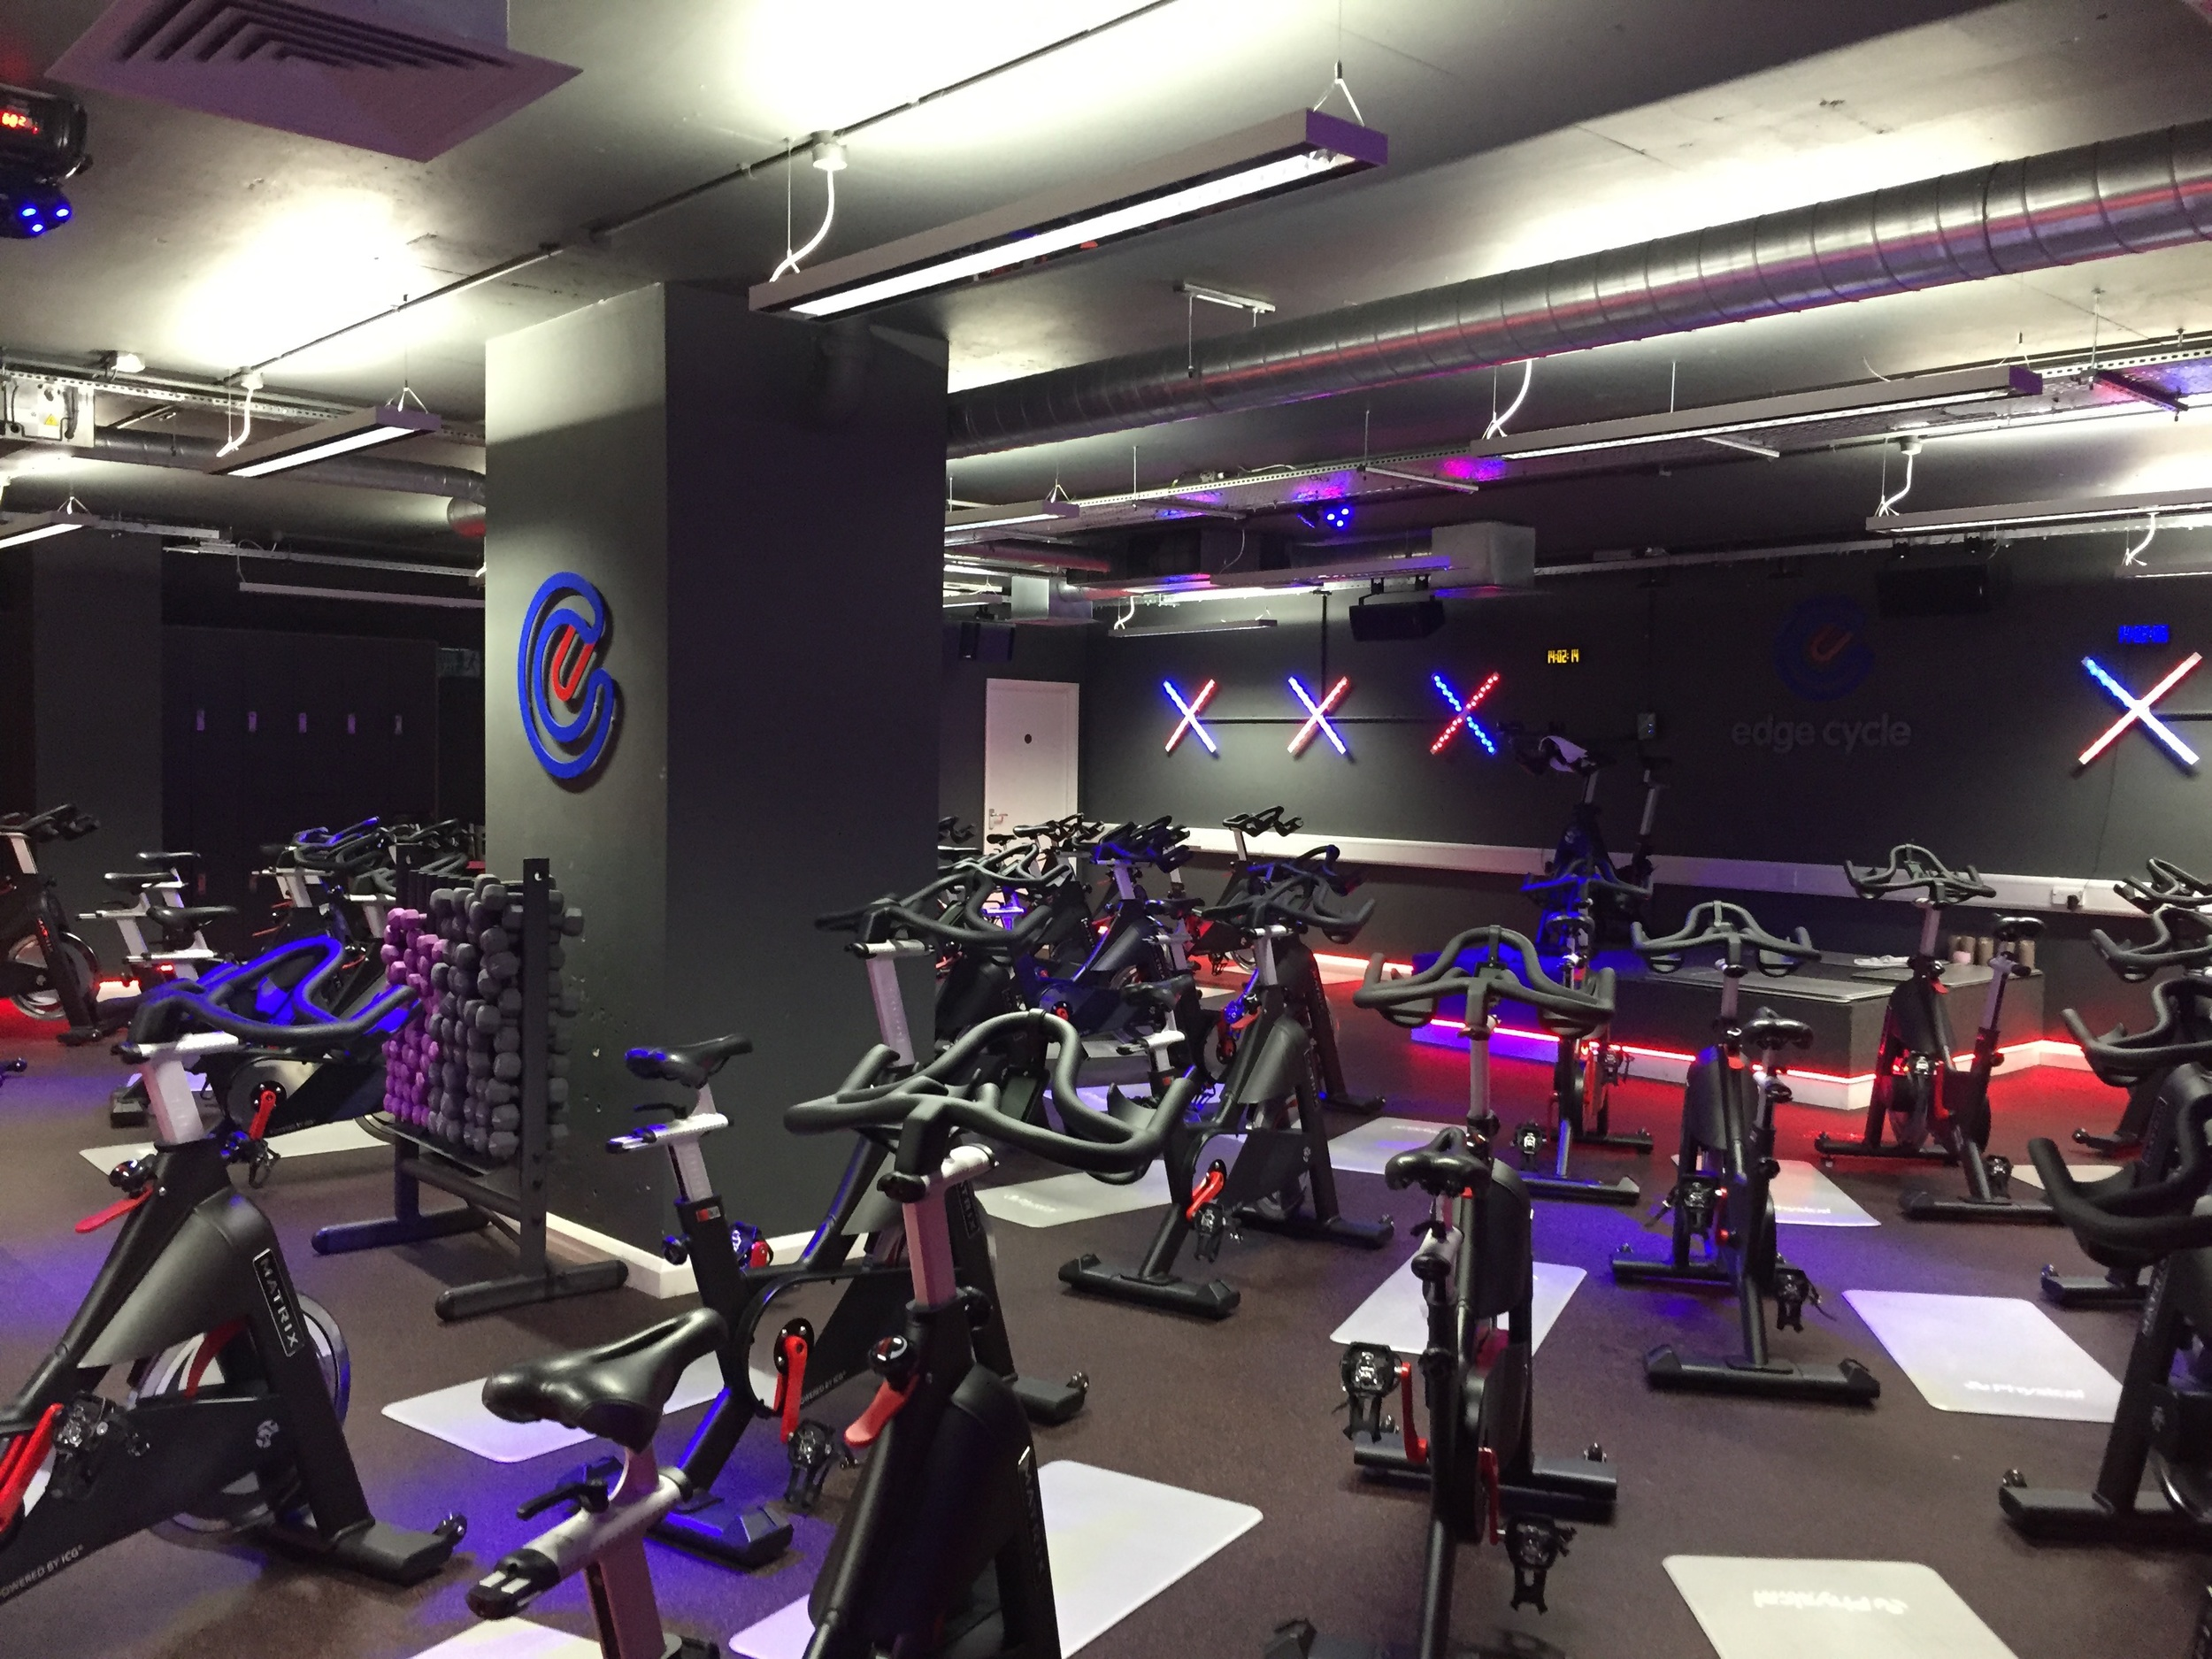 Edge Cycle, Indoor Cycling Studio,Holborn. Get Fit - Get the Edge.